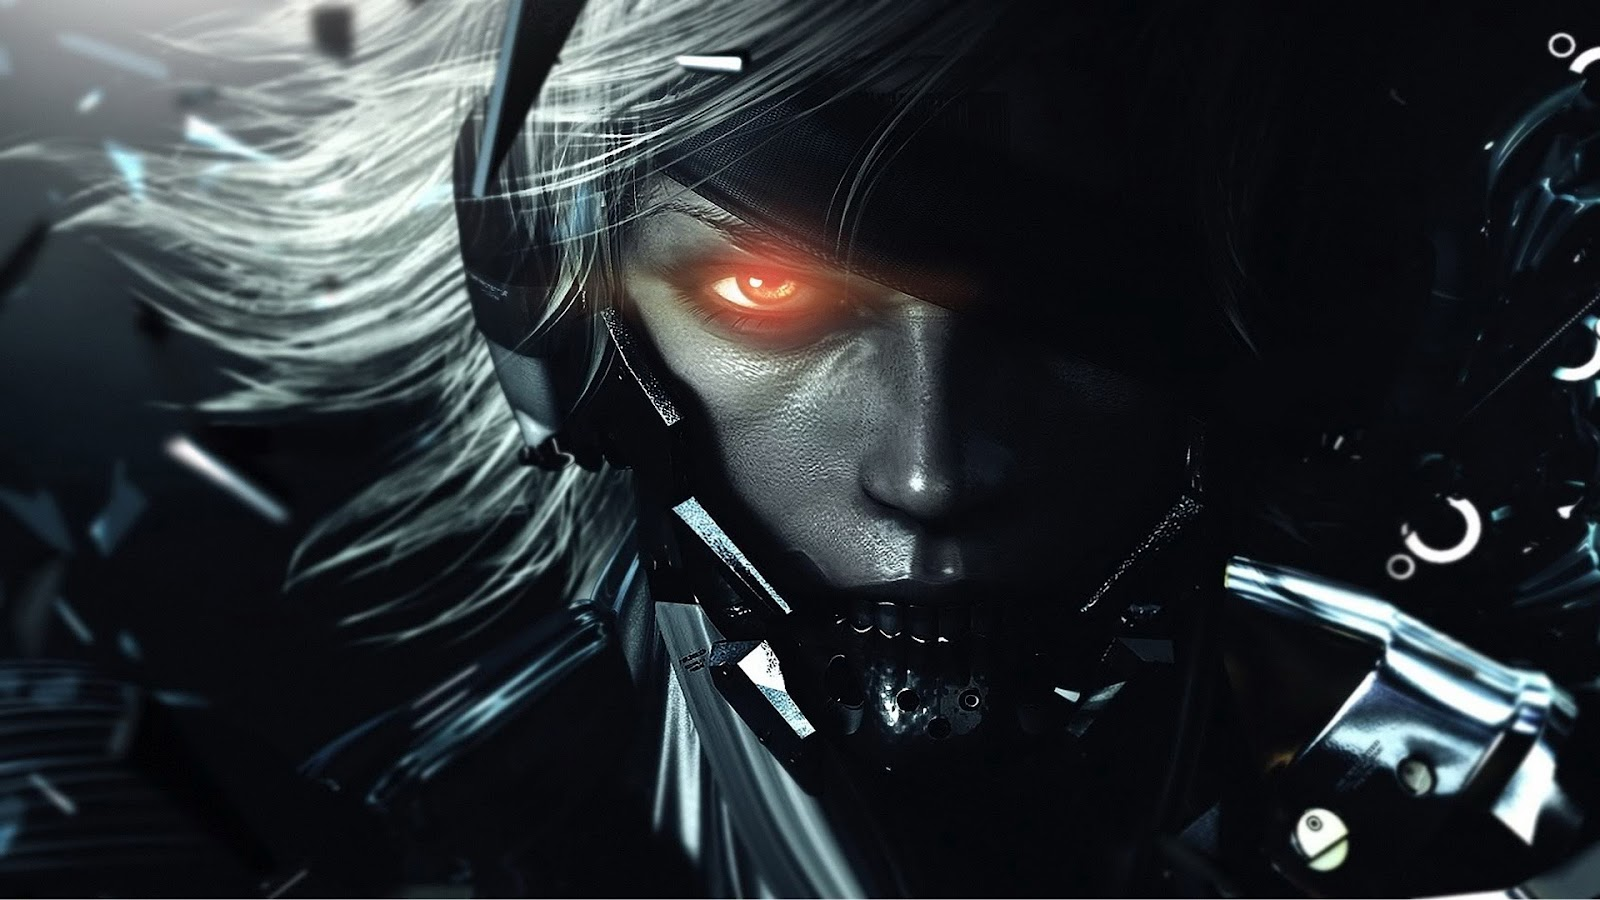 Metal gear rising wallpaper 14189 1600x900 px hdwallsource metal gear rising wallpaper 14189 voltagebd Image collections